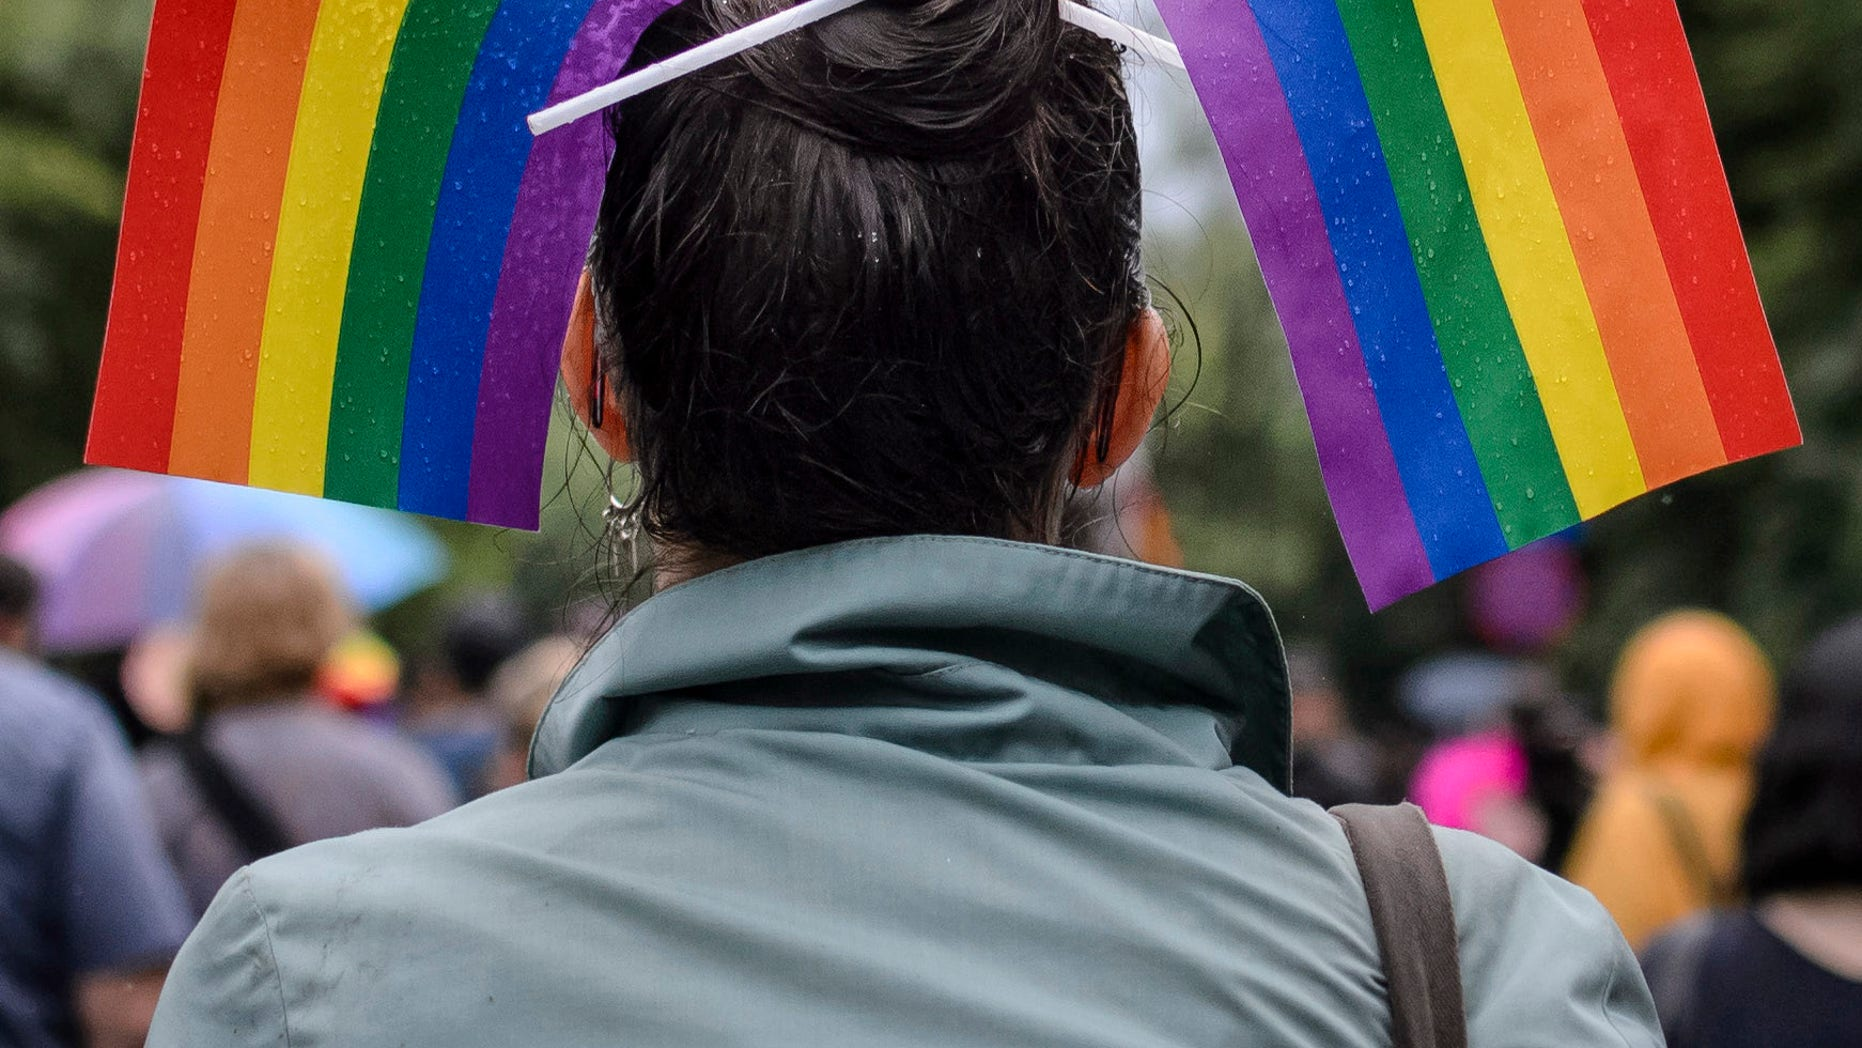 A woman with rainbow colored flags in her hair waits for the start of a gay pride parade in Bucharest, Romania, Saturday, May 20, 2017. Some 1,000 people have joined a gay pride march in the Romanian capital of Bucharest on Saturday, demanding greater rights amid government moves they say will curtail their human rights. (AP Photo/Andreea Alexandru)